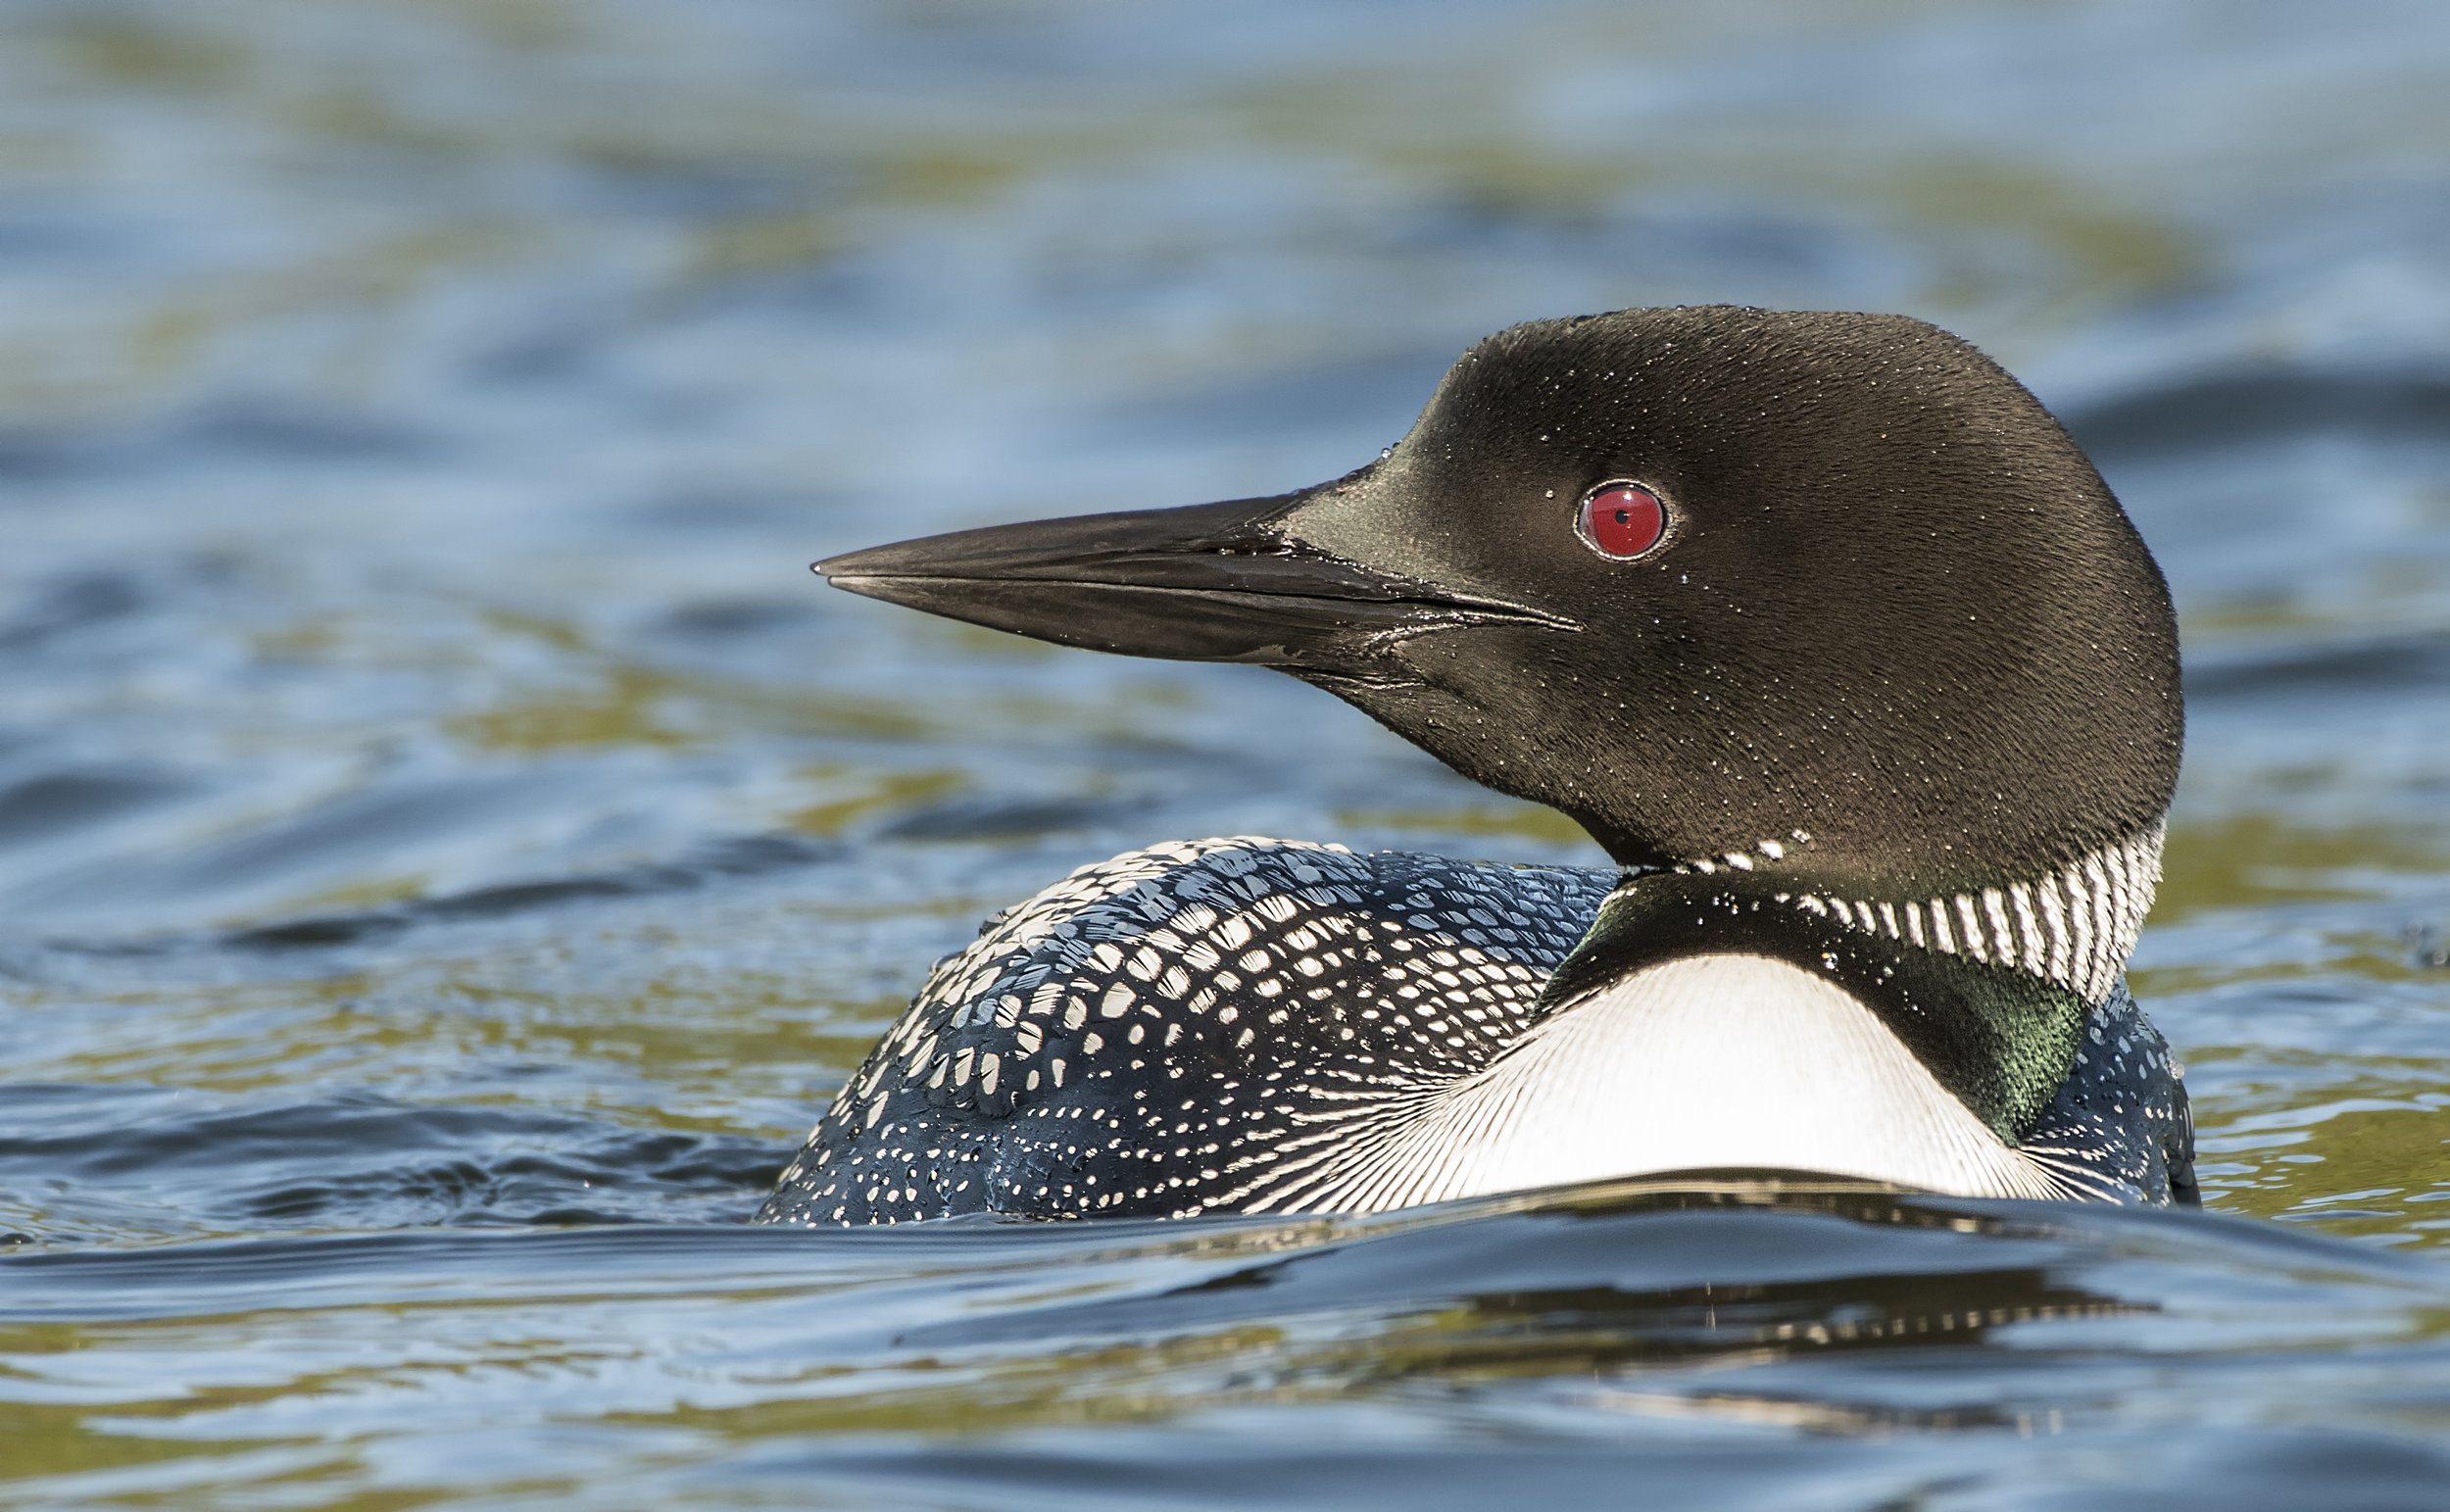 Common loon side profile